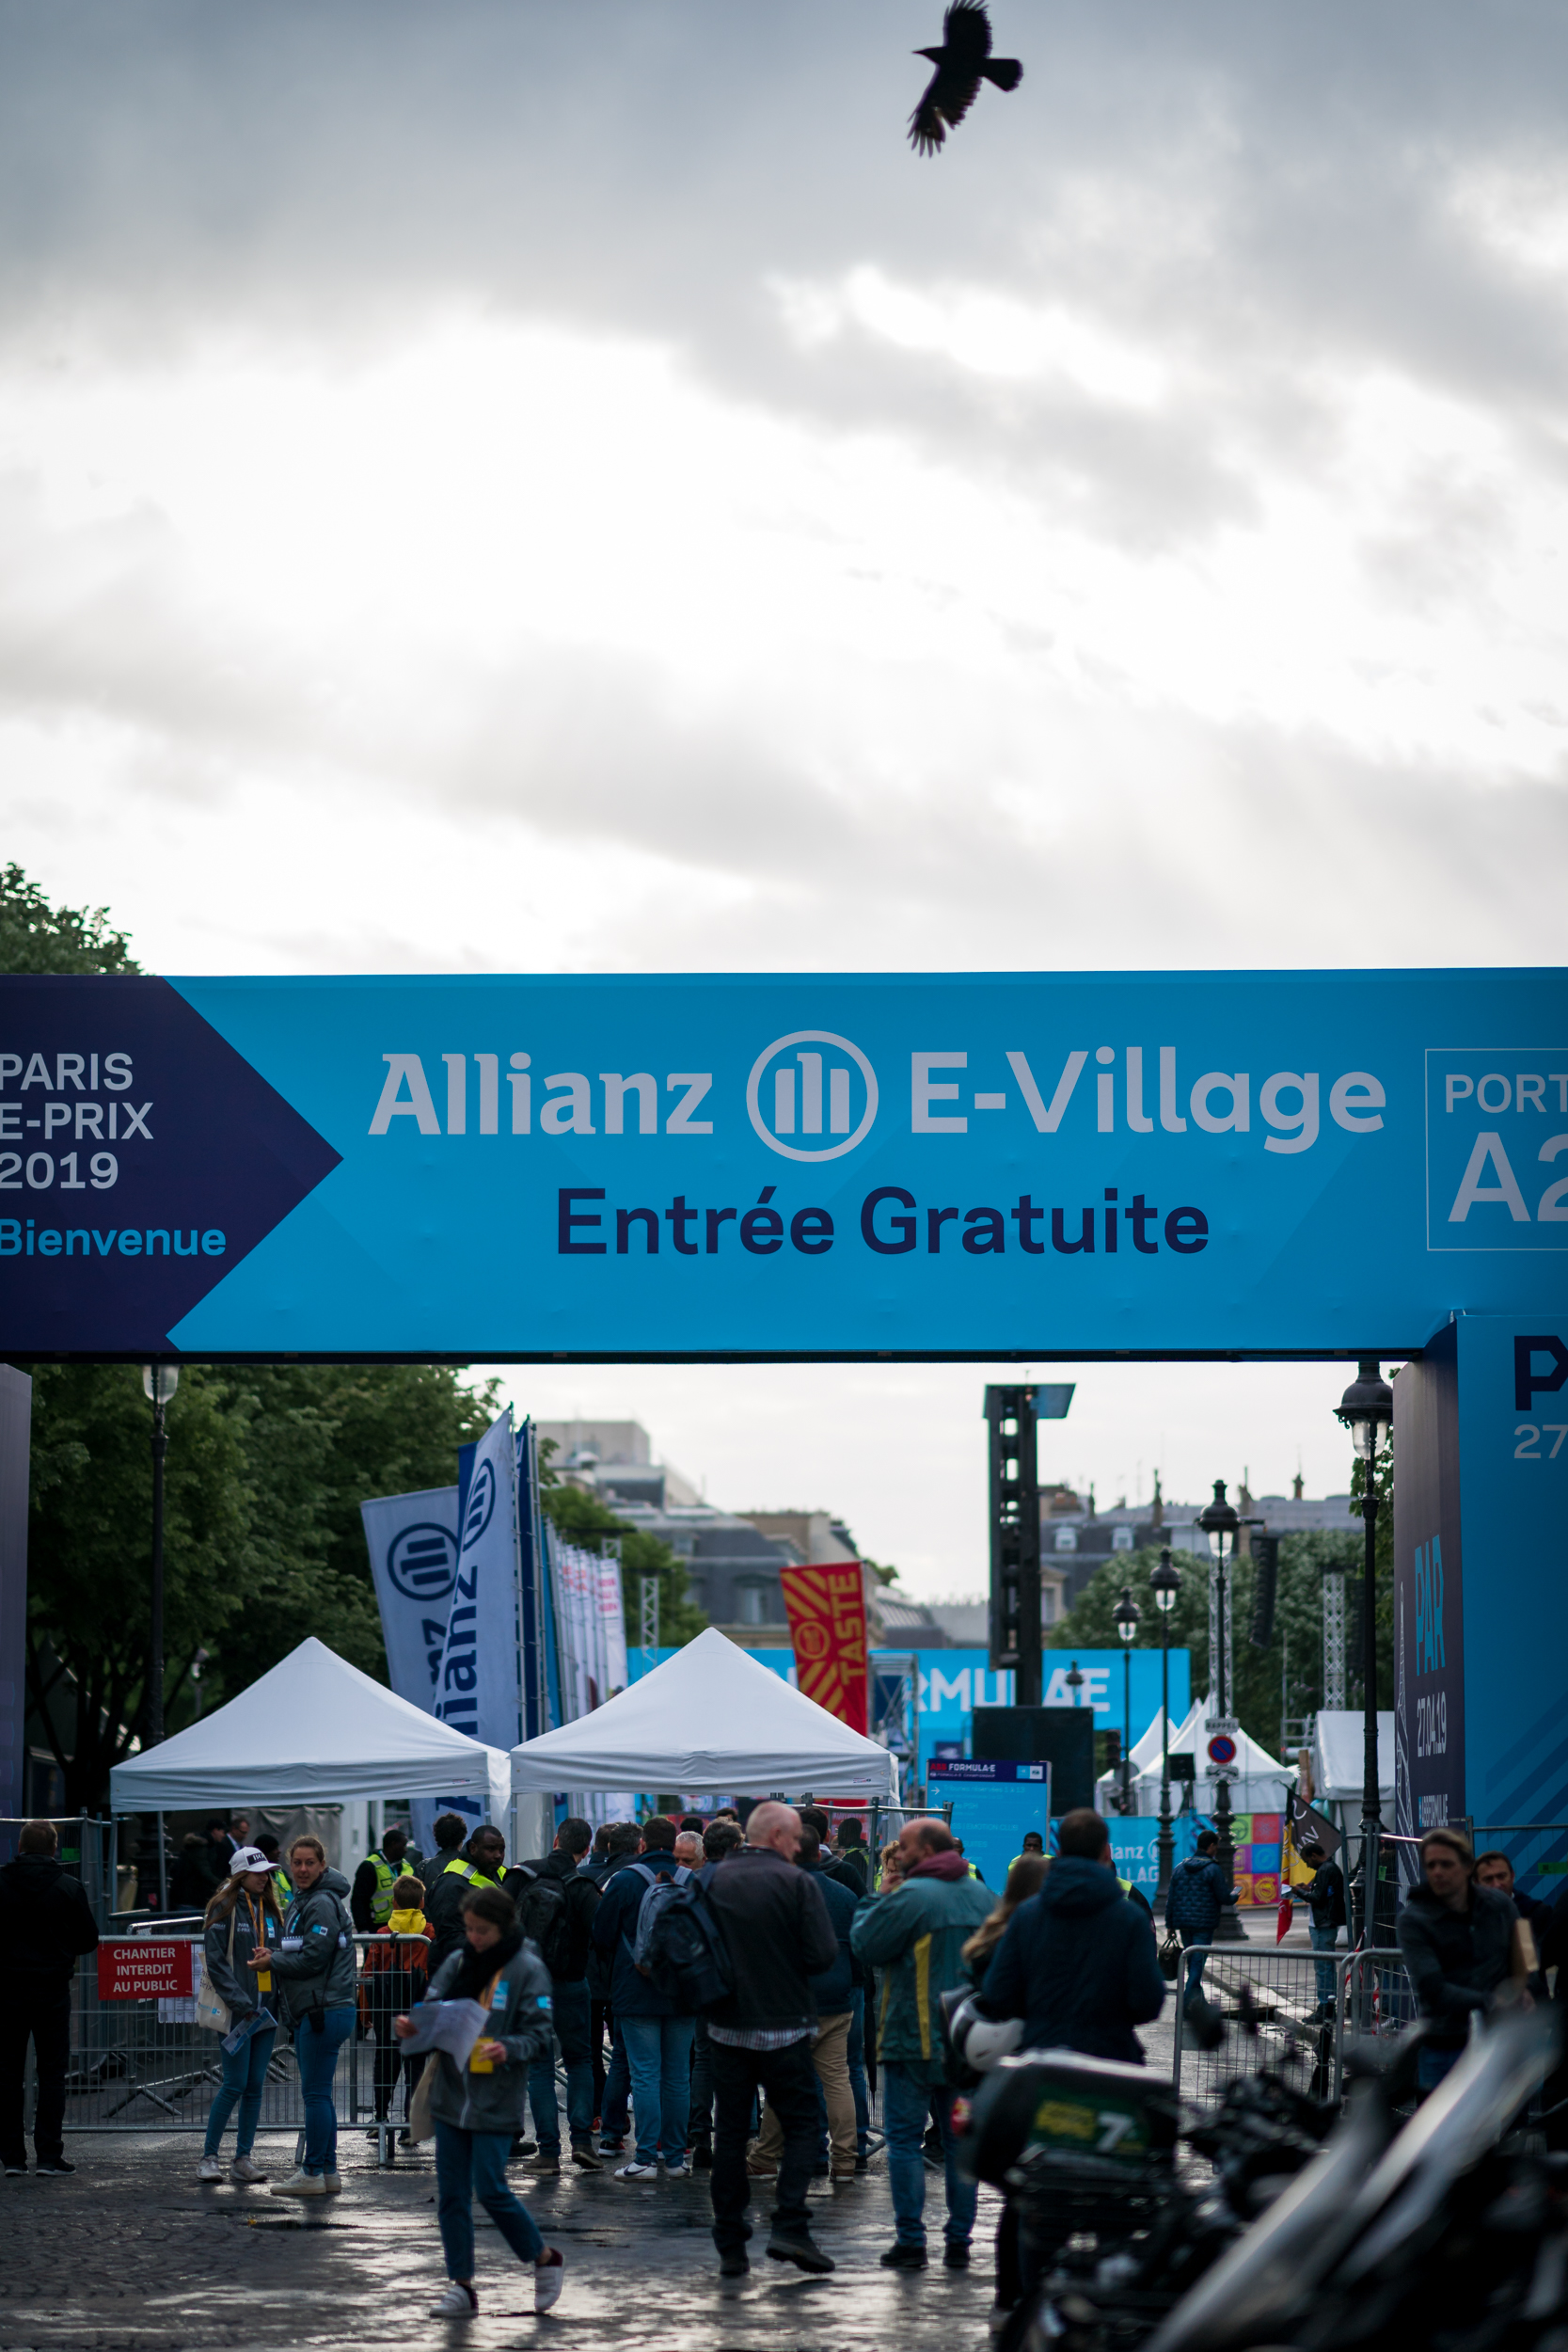 BMW i_Formula E Paris 2019_26&27-04-19_Florian Leger_SHARE & DARE_HD_N°-189.jpg